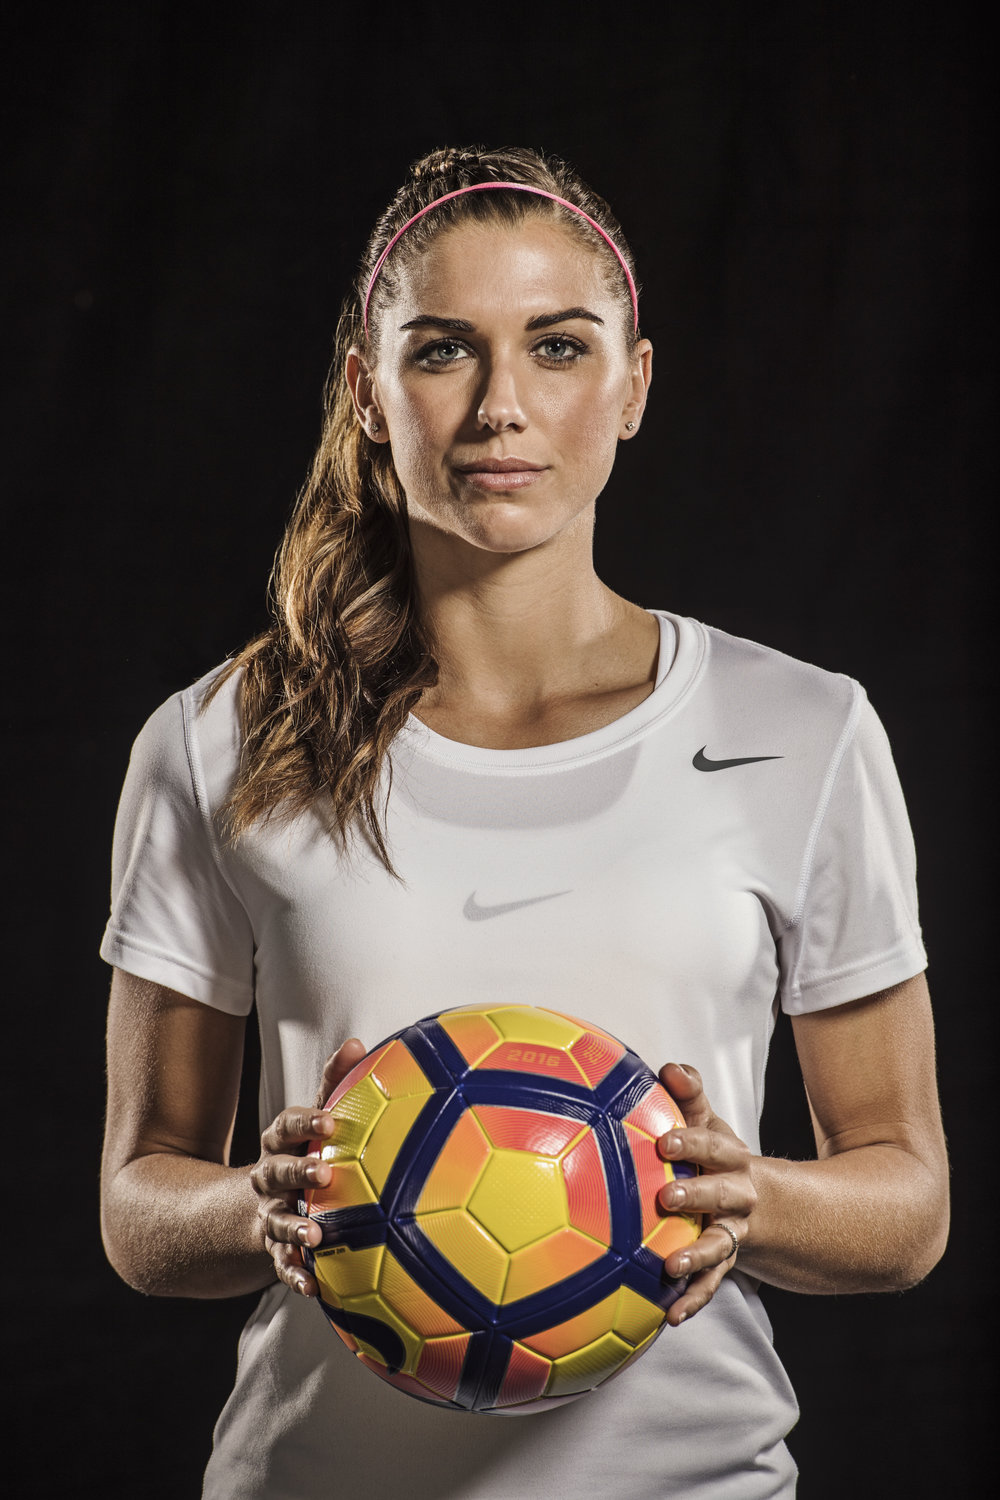 Chevrolet 2 Alex Morgan.jpg